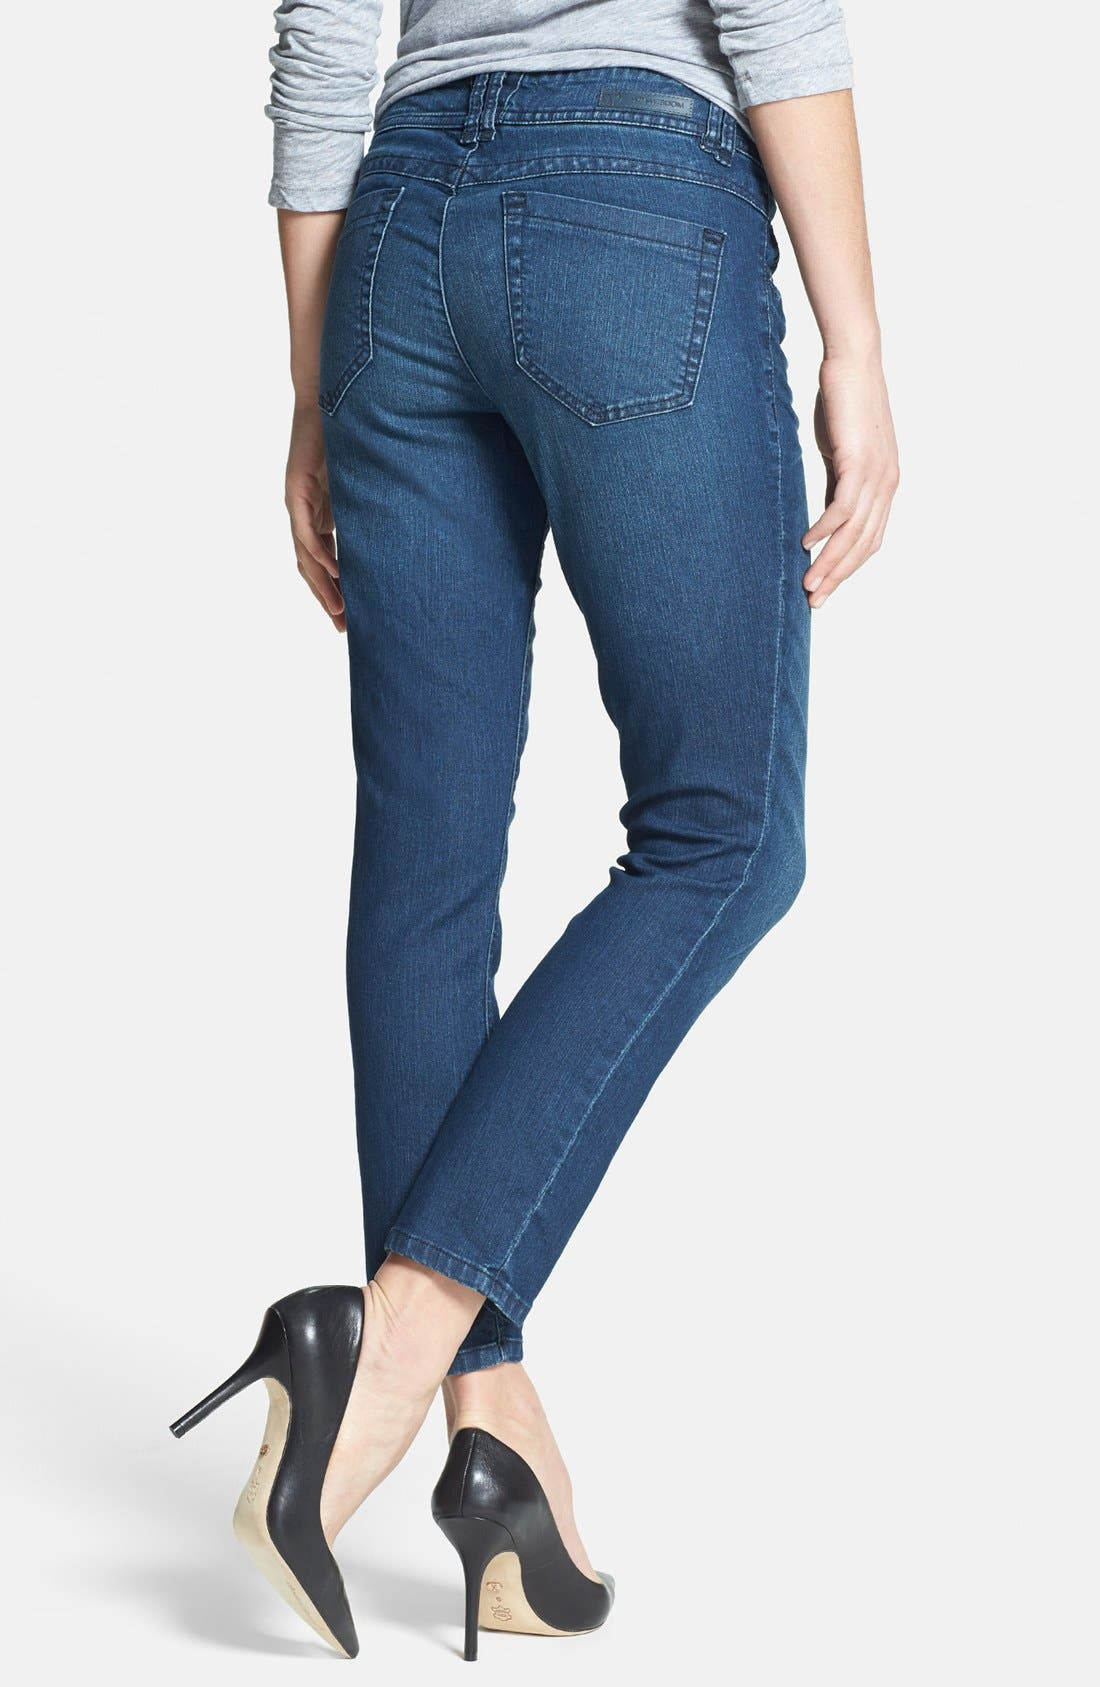 Alternate Image 2  - Wit & Wisdom Stretch Ankle Skinny Jeans (Tencel Indigo) (Nordstrom Exclusive)